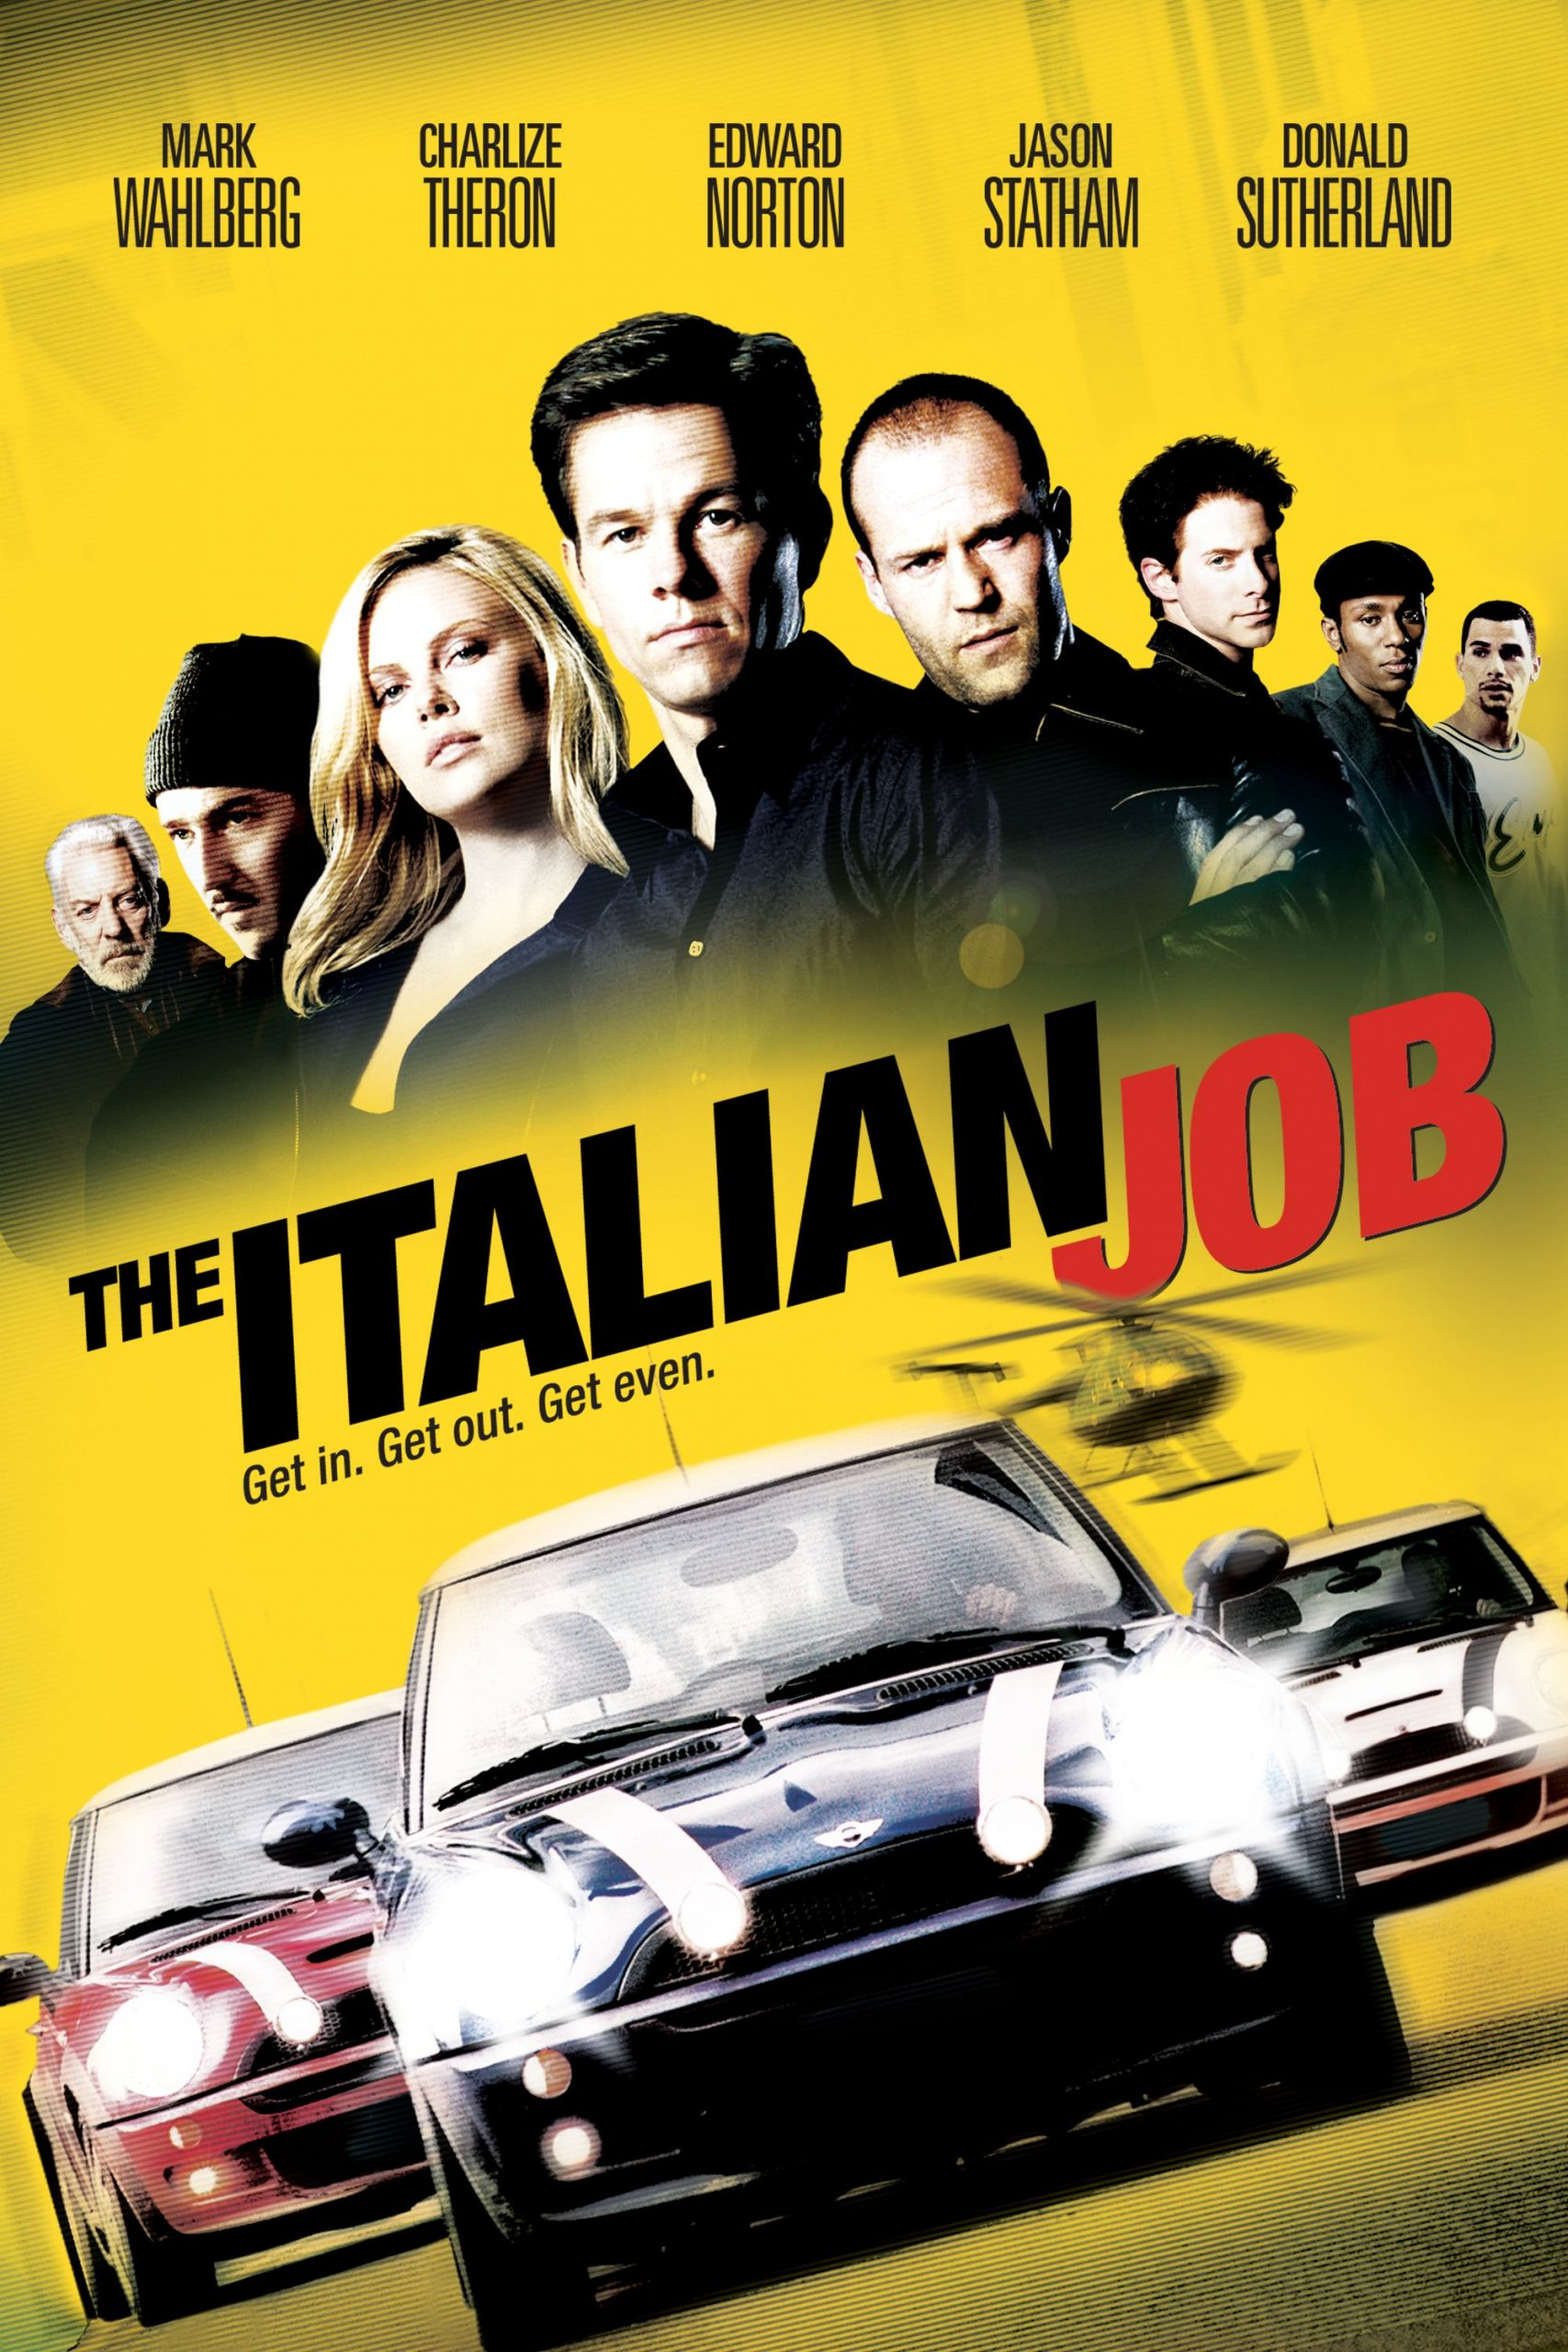 The Italian Job (2003) Movie Poster - Mark Wahlberg, Charlize ...